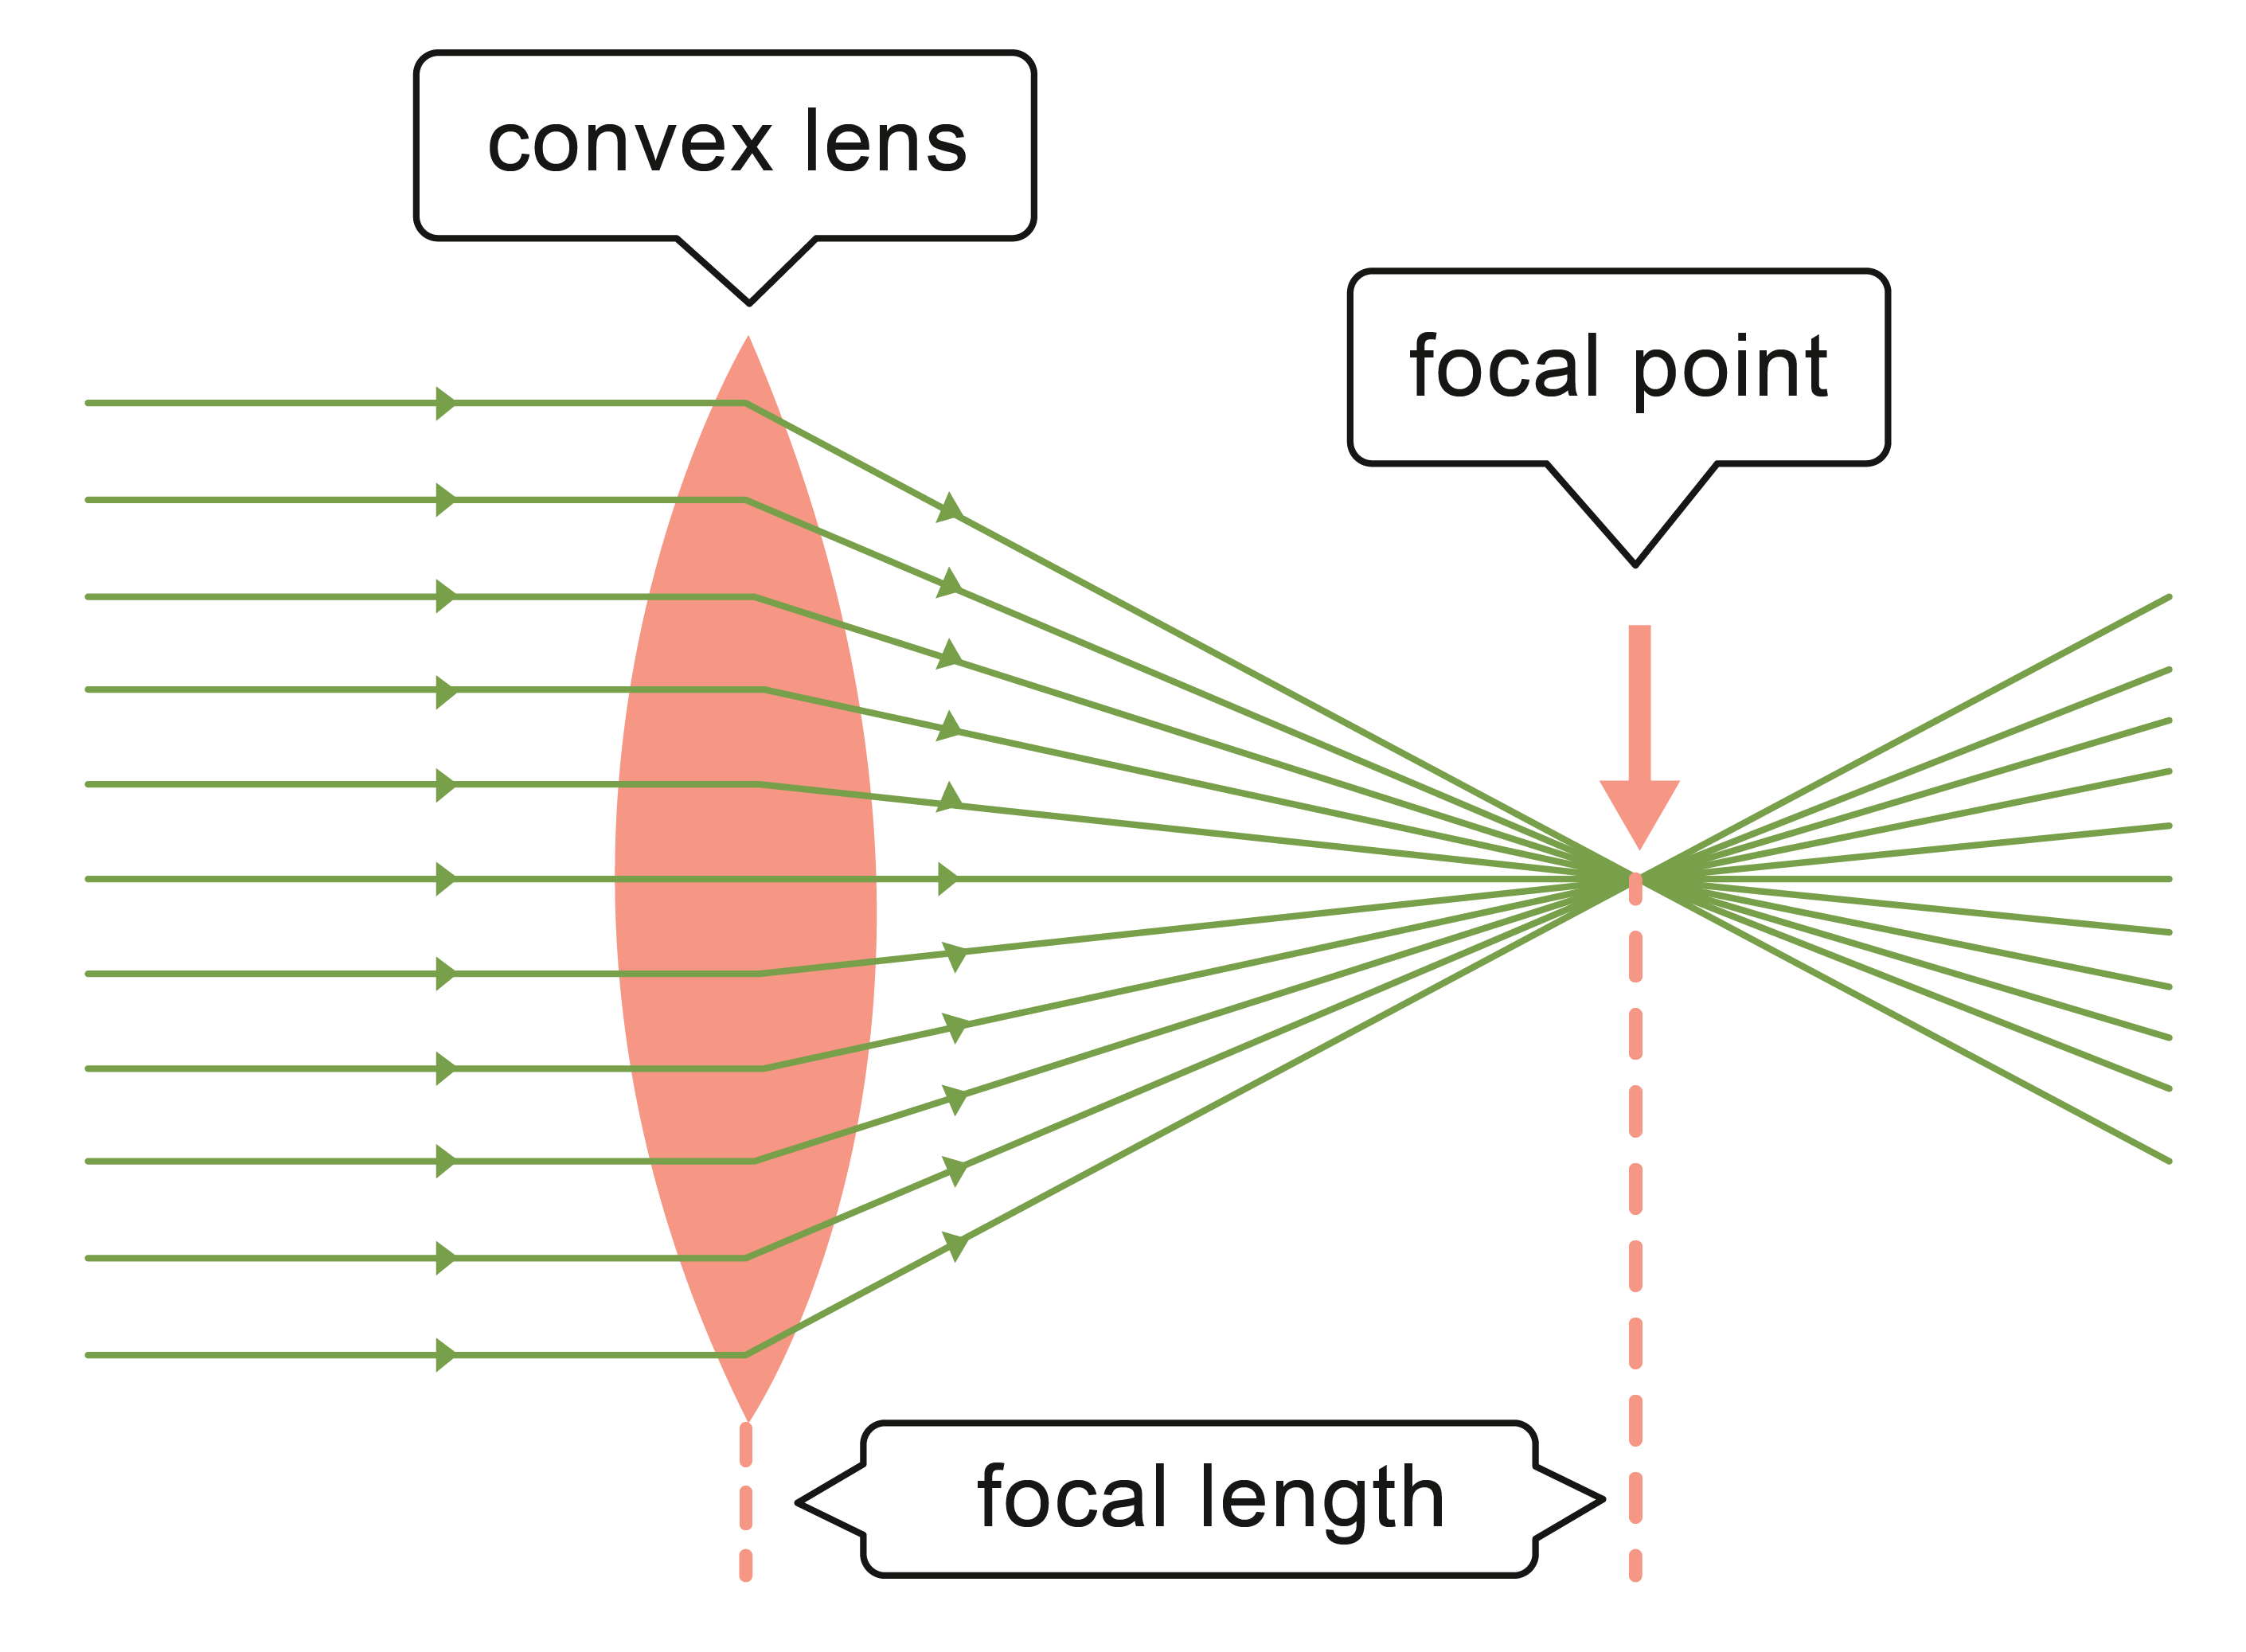 worksheet Convex And Concave Lenses Worksheet forming images worksheet edplace convex lenses gather the rays of light at a certain point focal this way they make object look bigger sharper and brighter